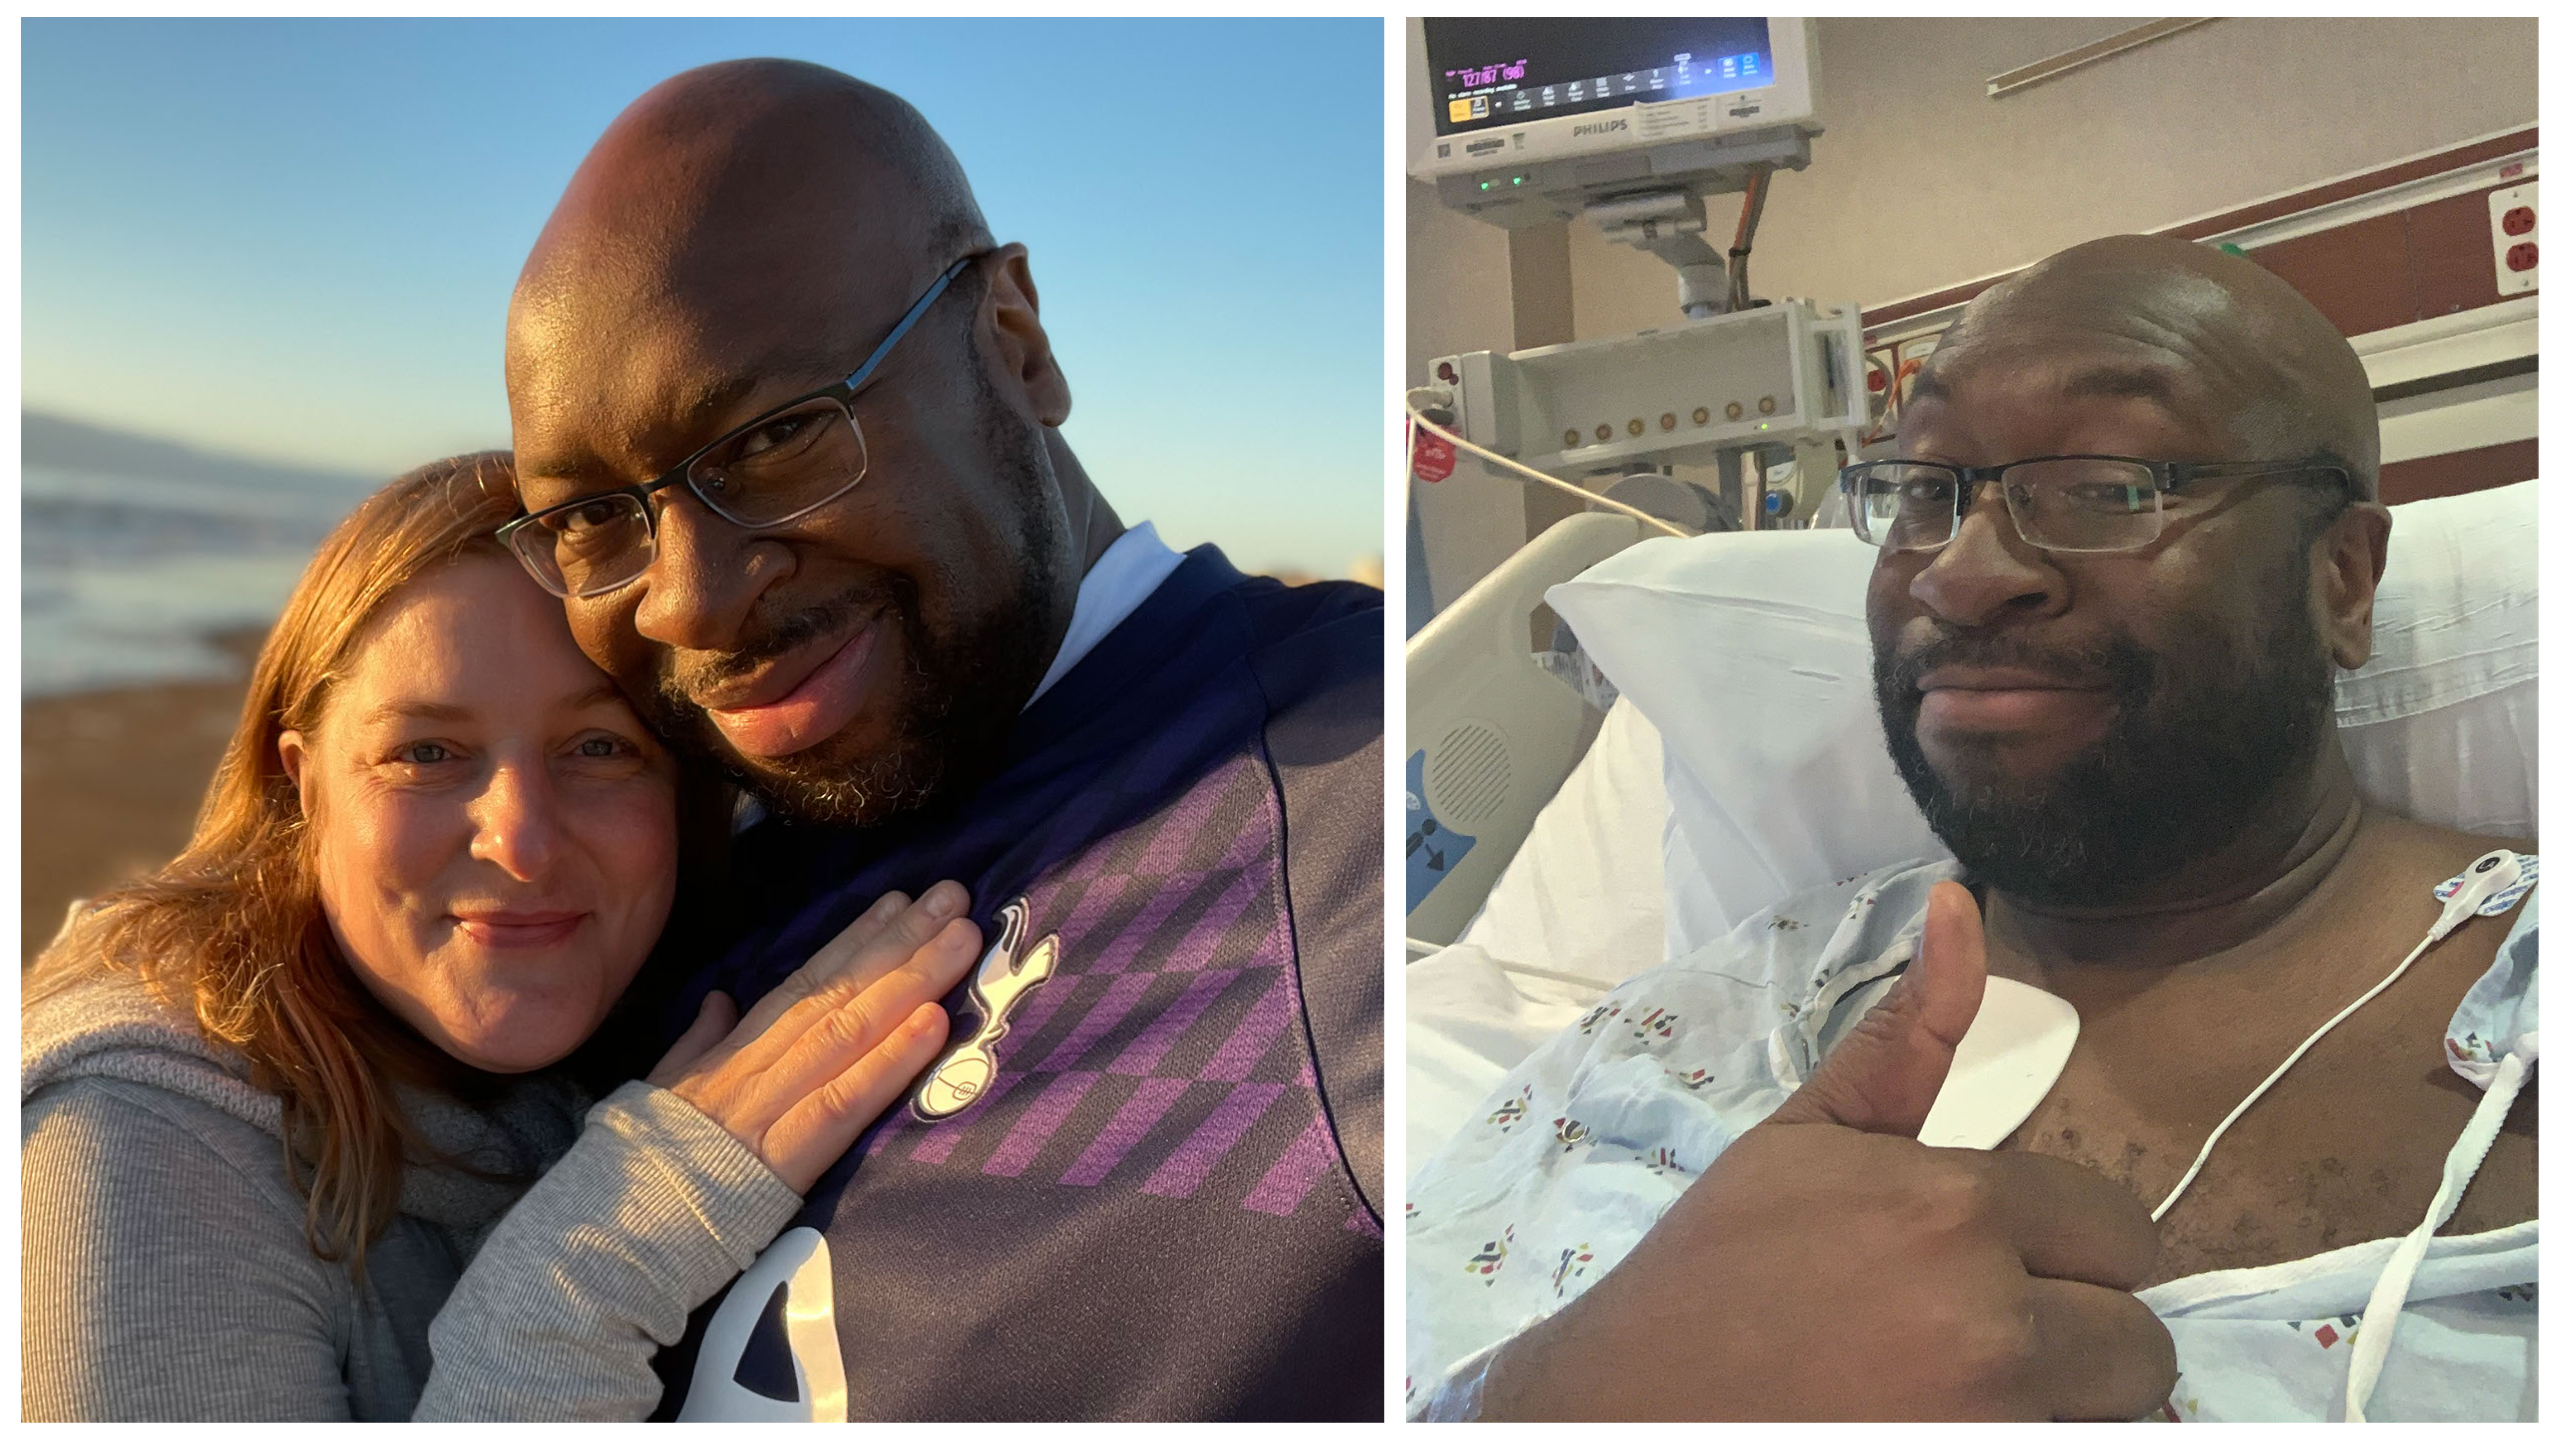 Through a commitment to quick action and cardiac rehabilitation, George restored his heart health to live his happily-ever-after with his new wife.